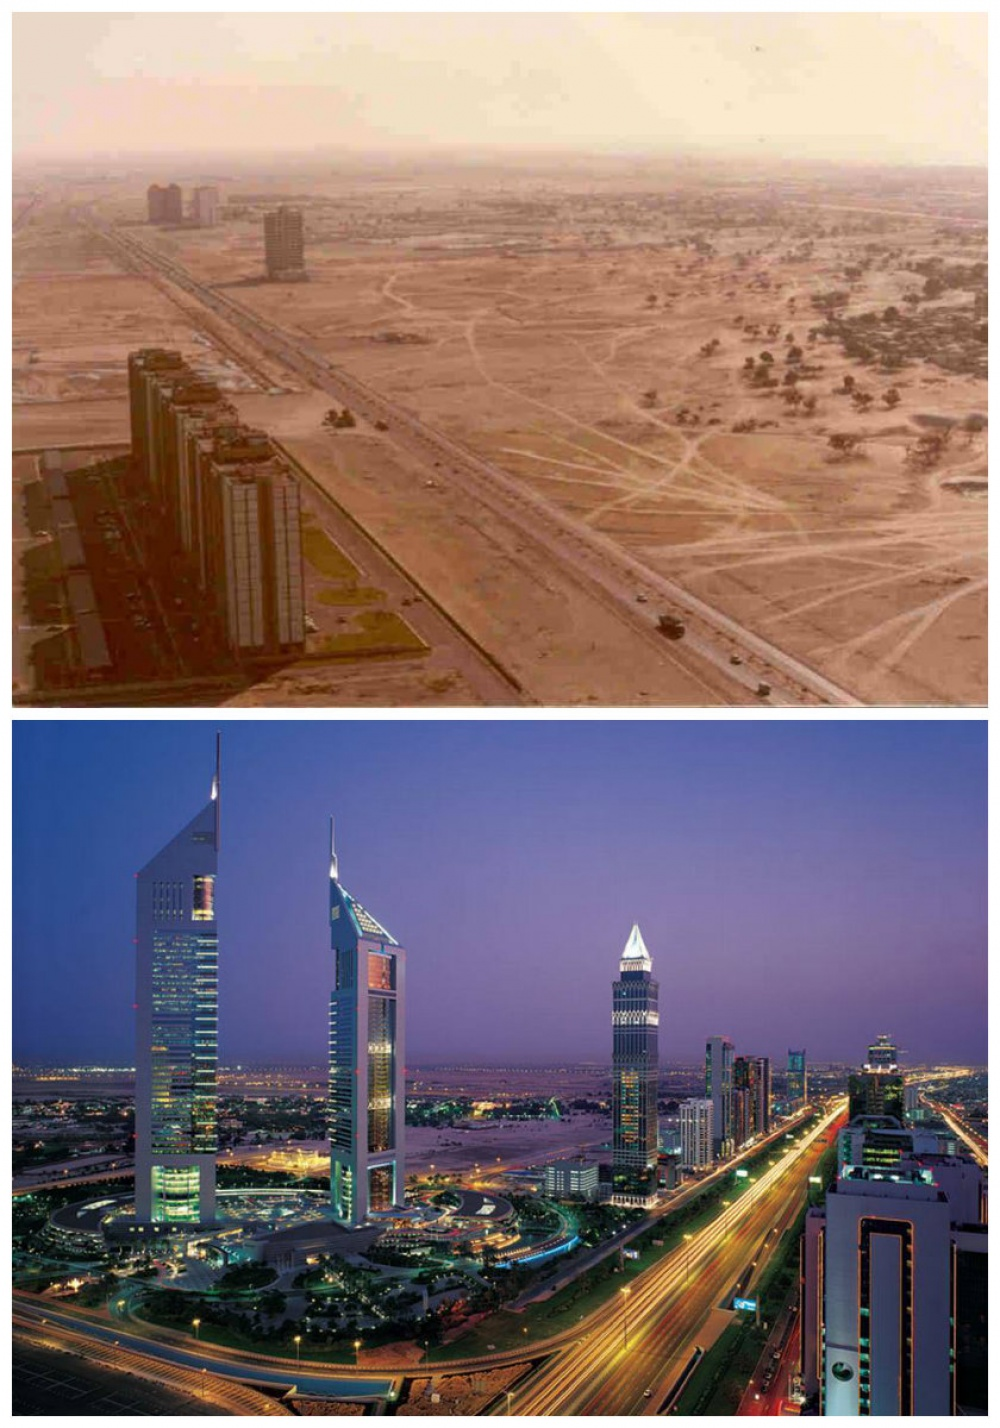 Dubai, UAE: The 1980s vs. today